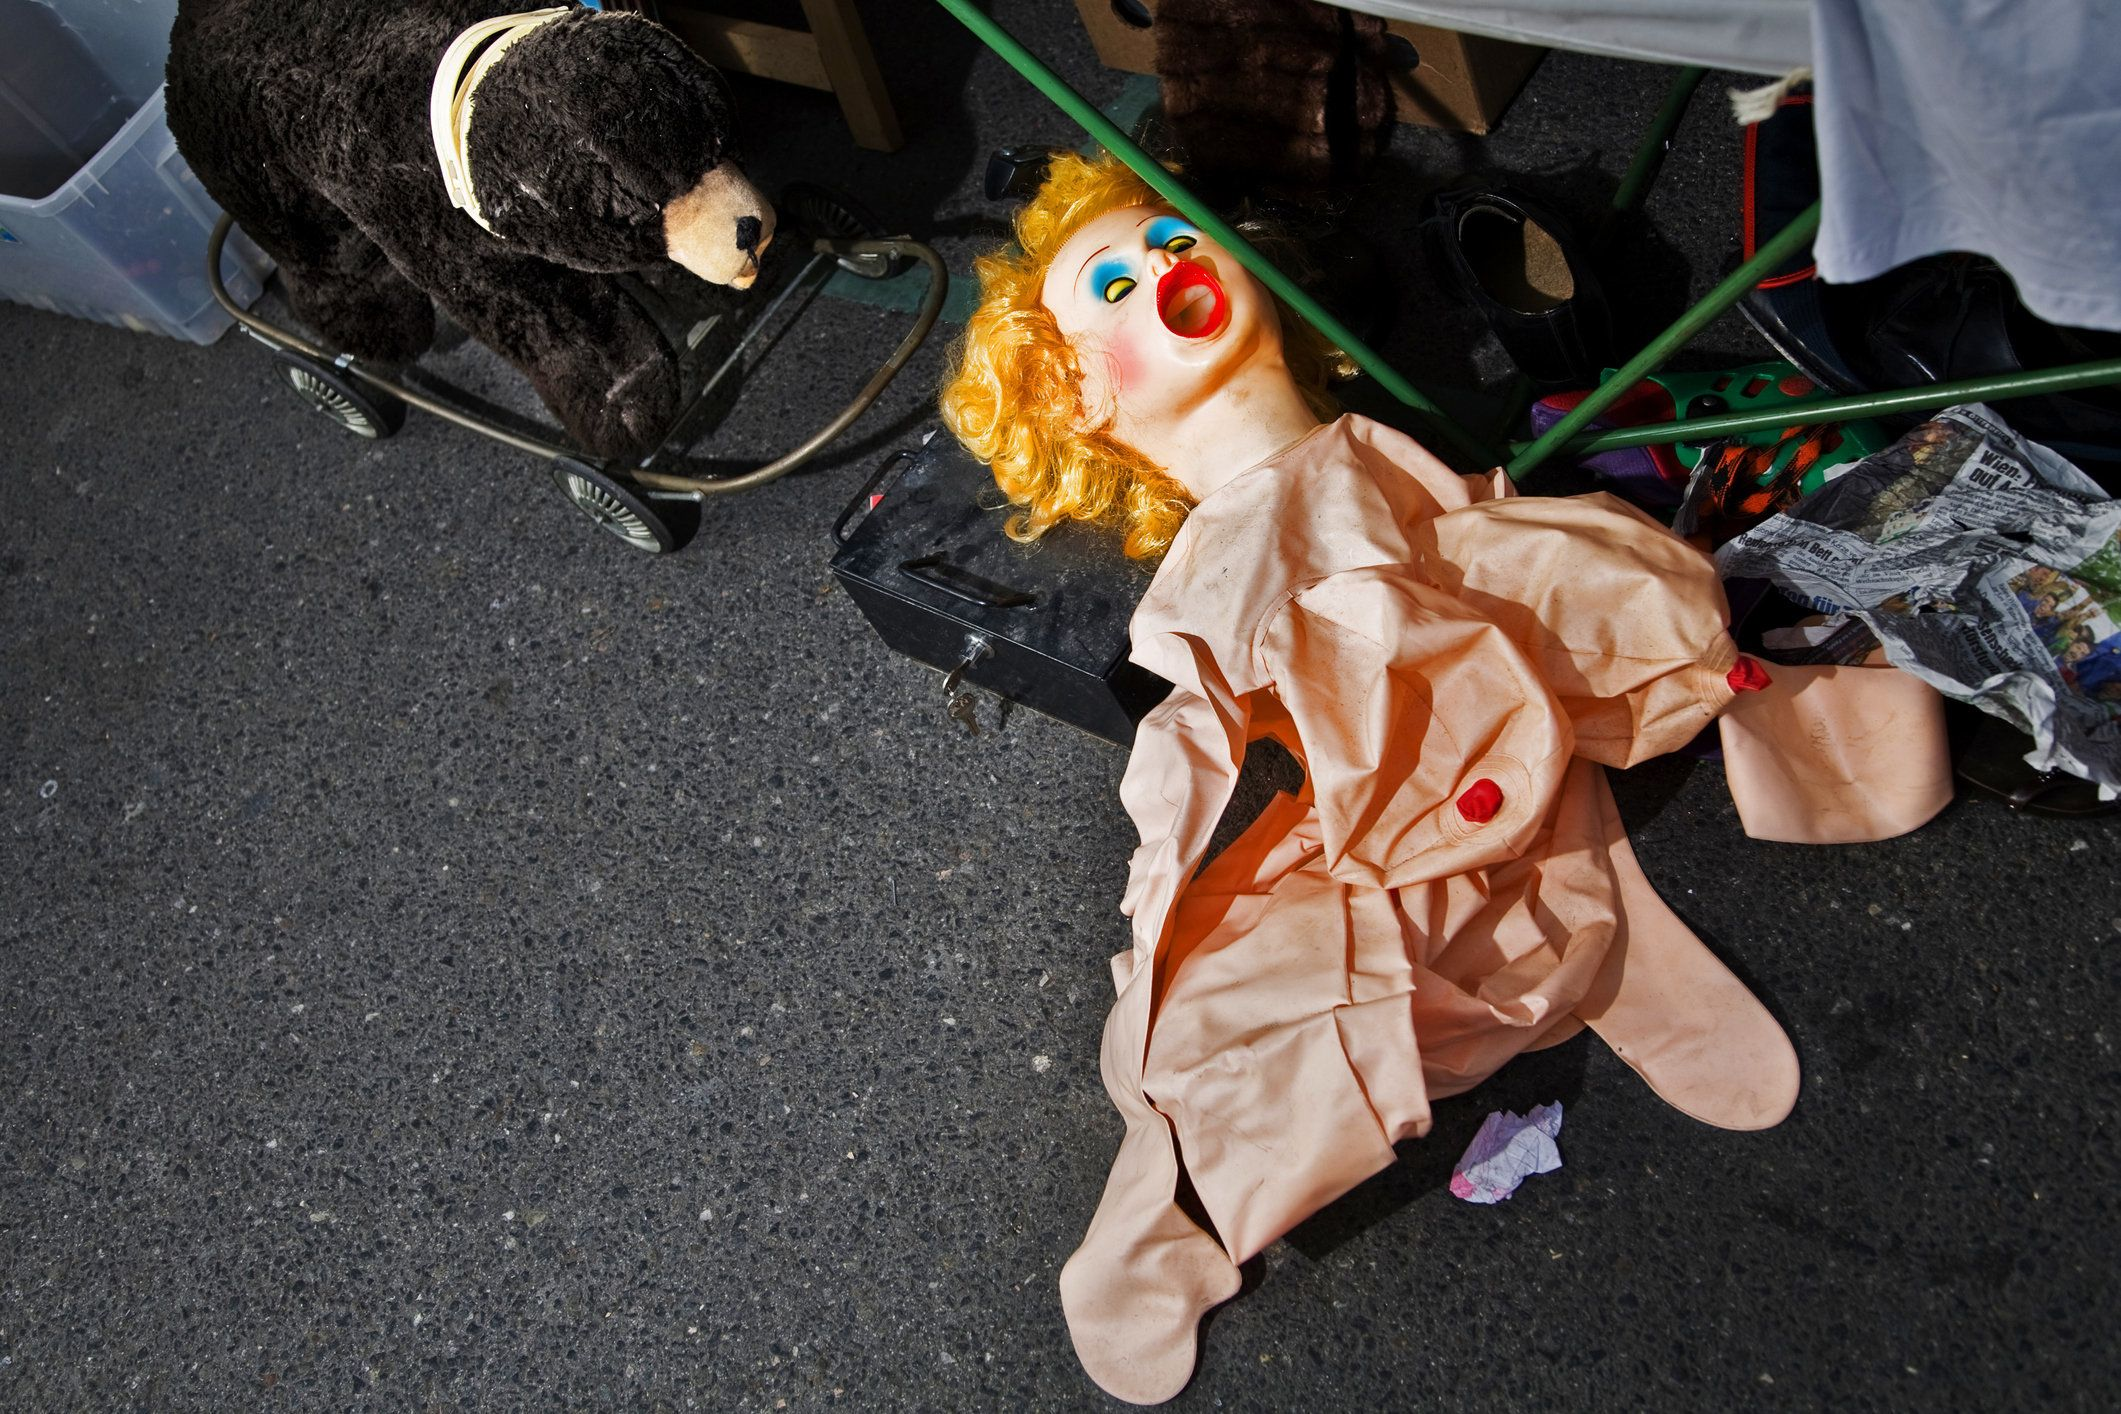 A sex doll on the floor at the viennese Naschmarkt is chasen by a doll-bear